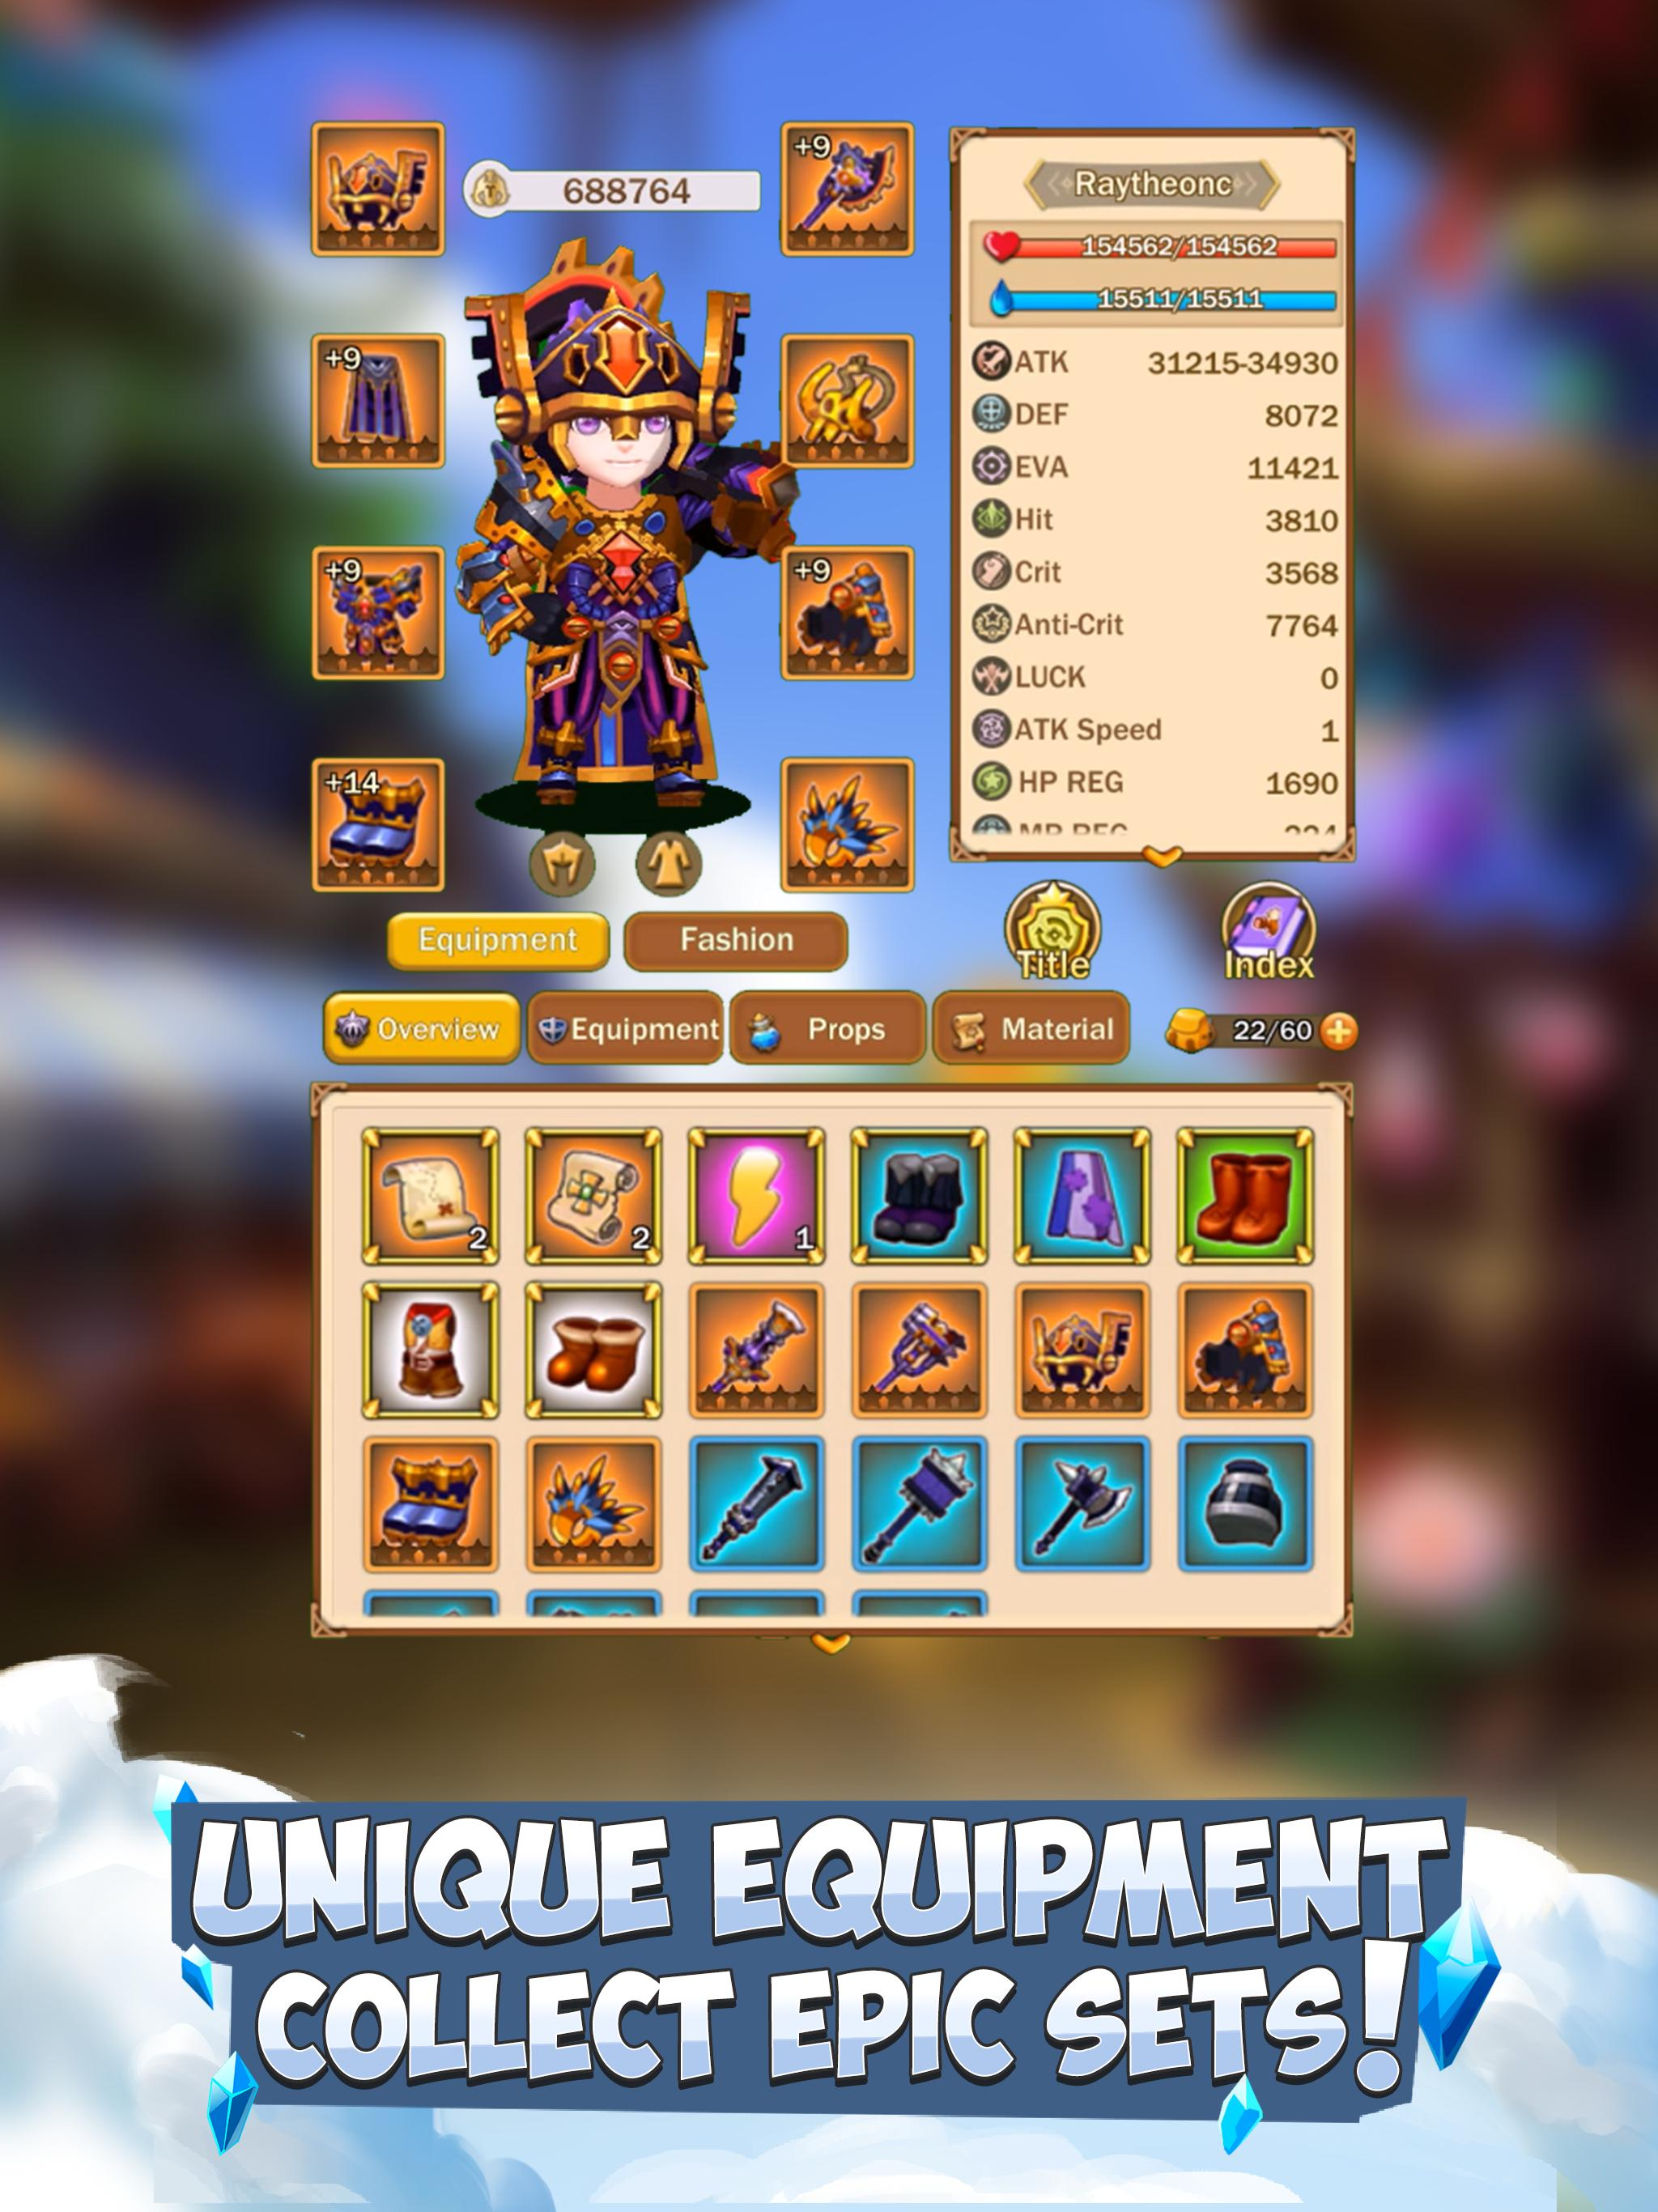 Knights & Dungeons: Epic Action RPG for Android - APK Download